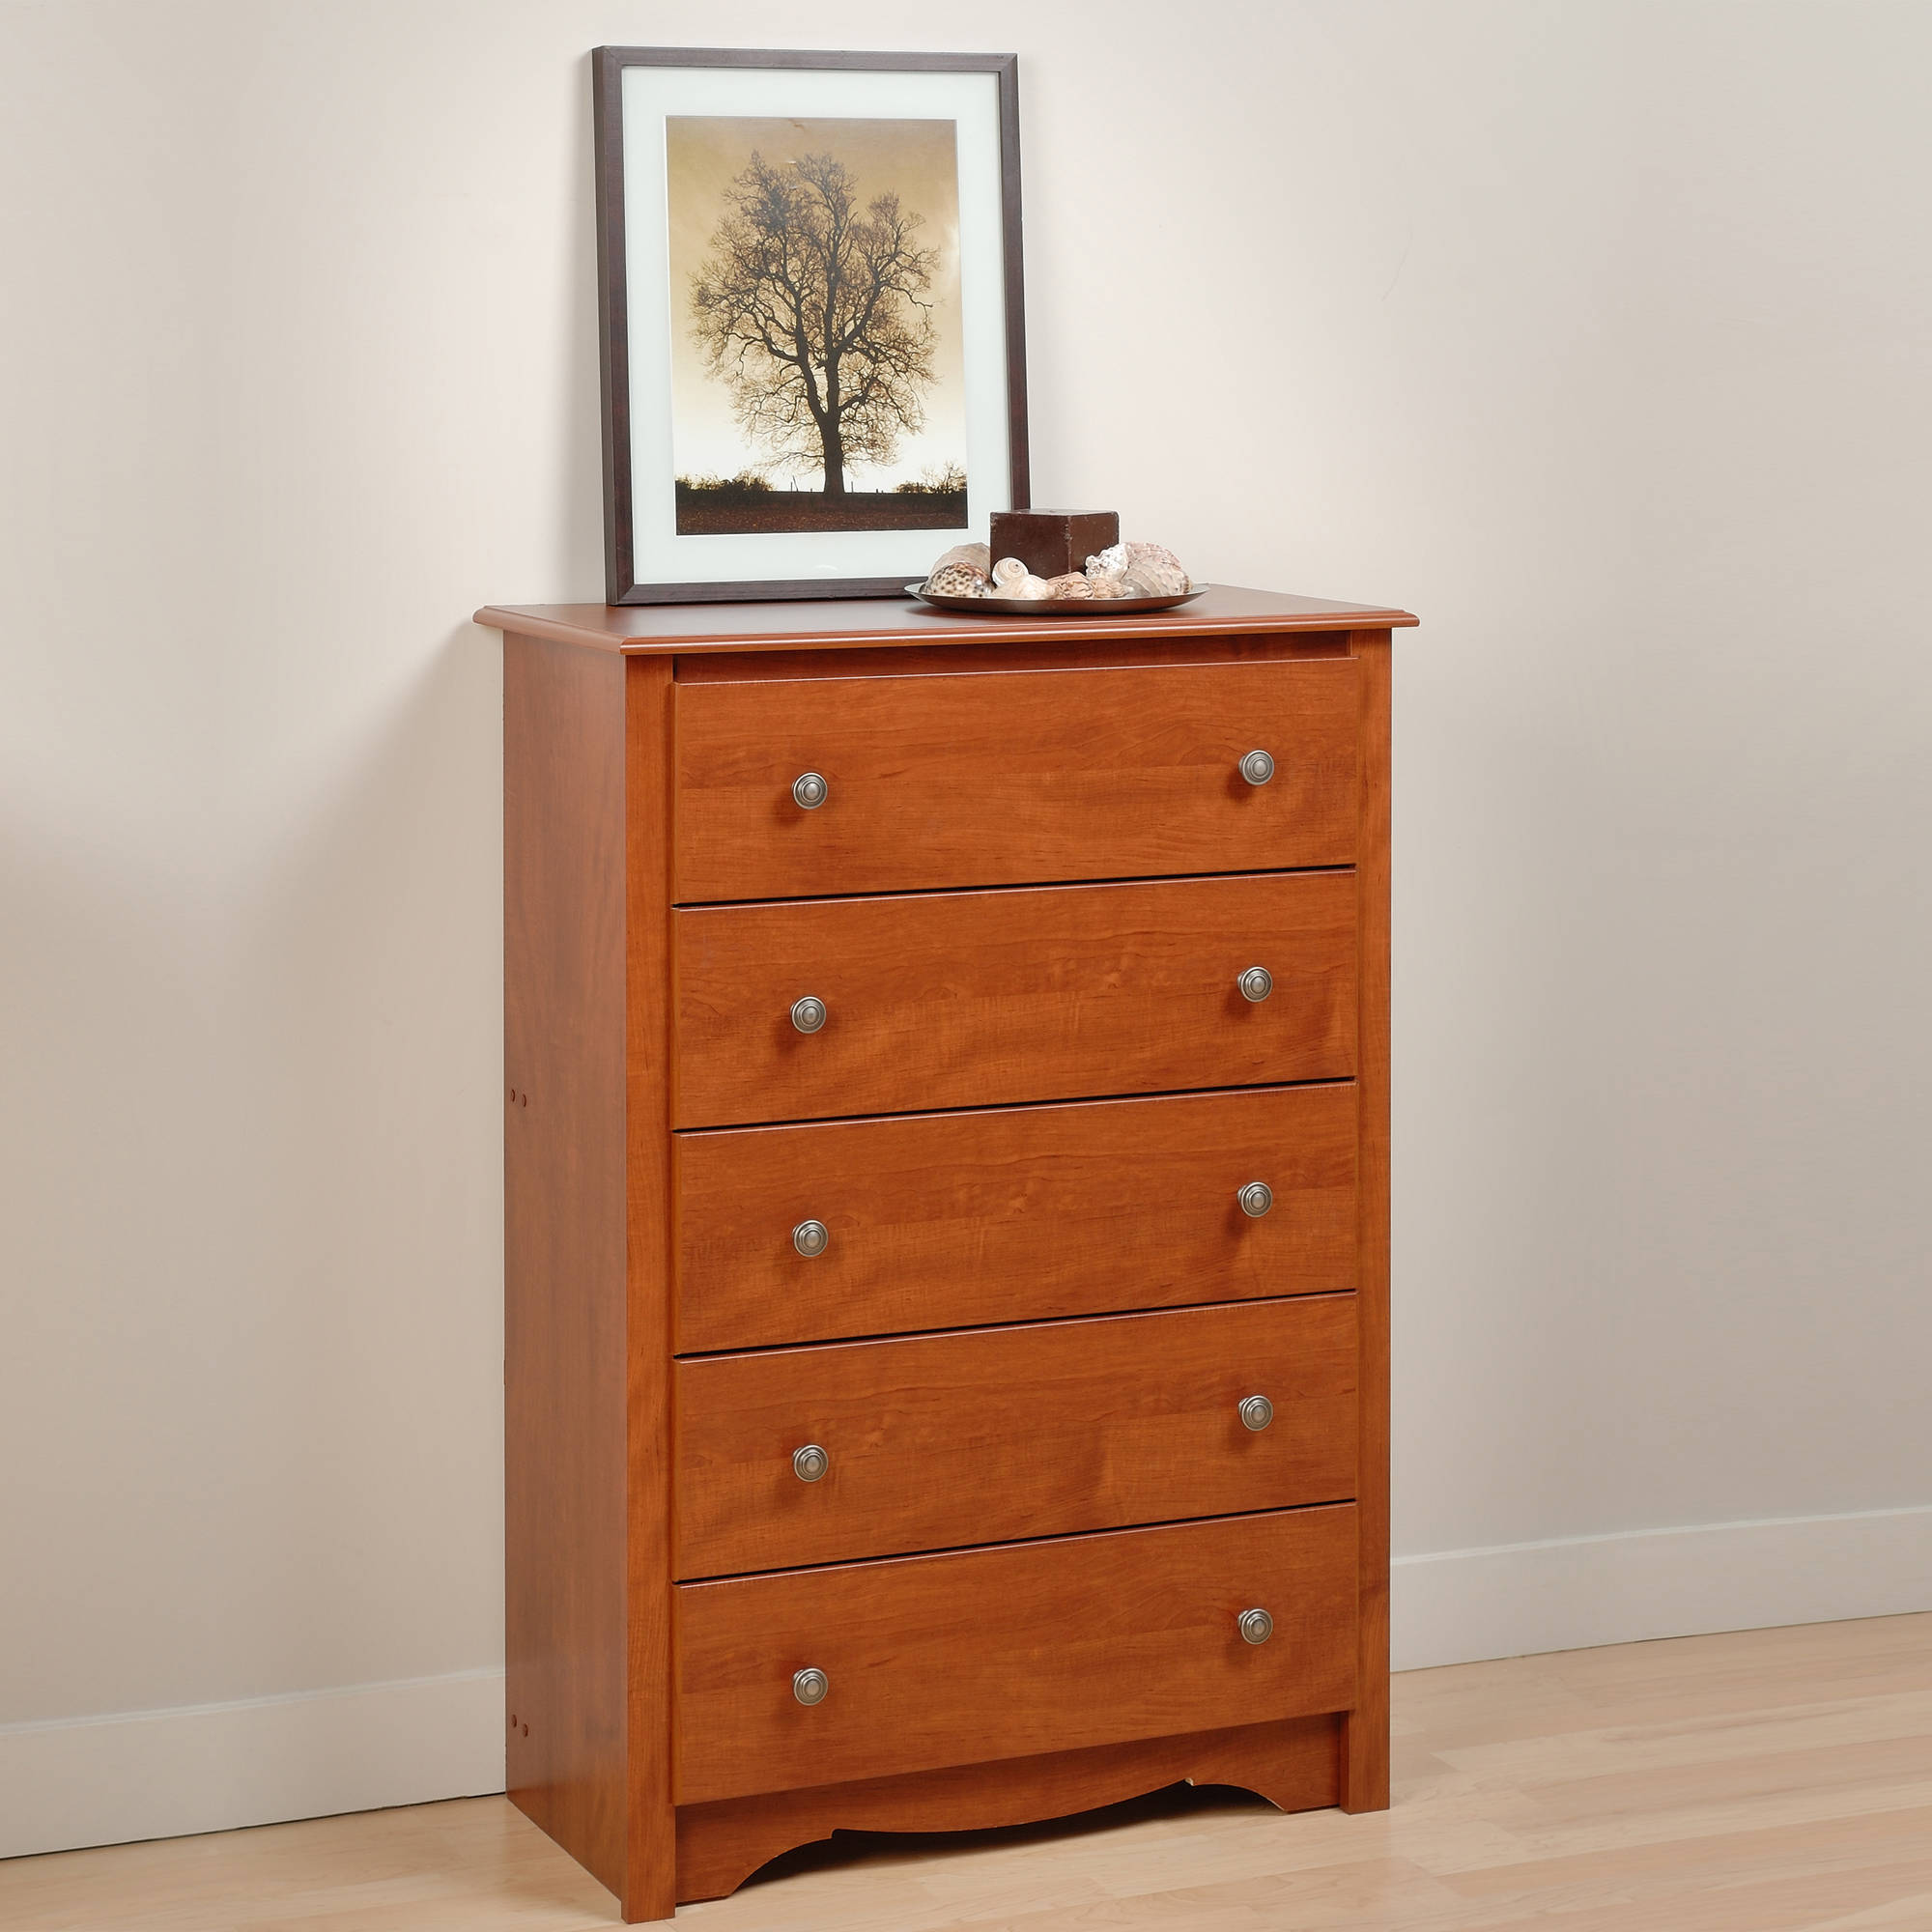 Prepac Edenvale 5-Drawer Dresser, Cherry (Box 1 of 2) by Prepac